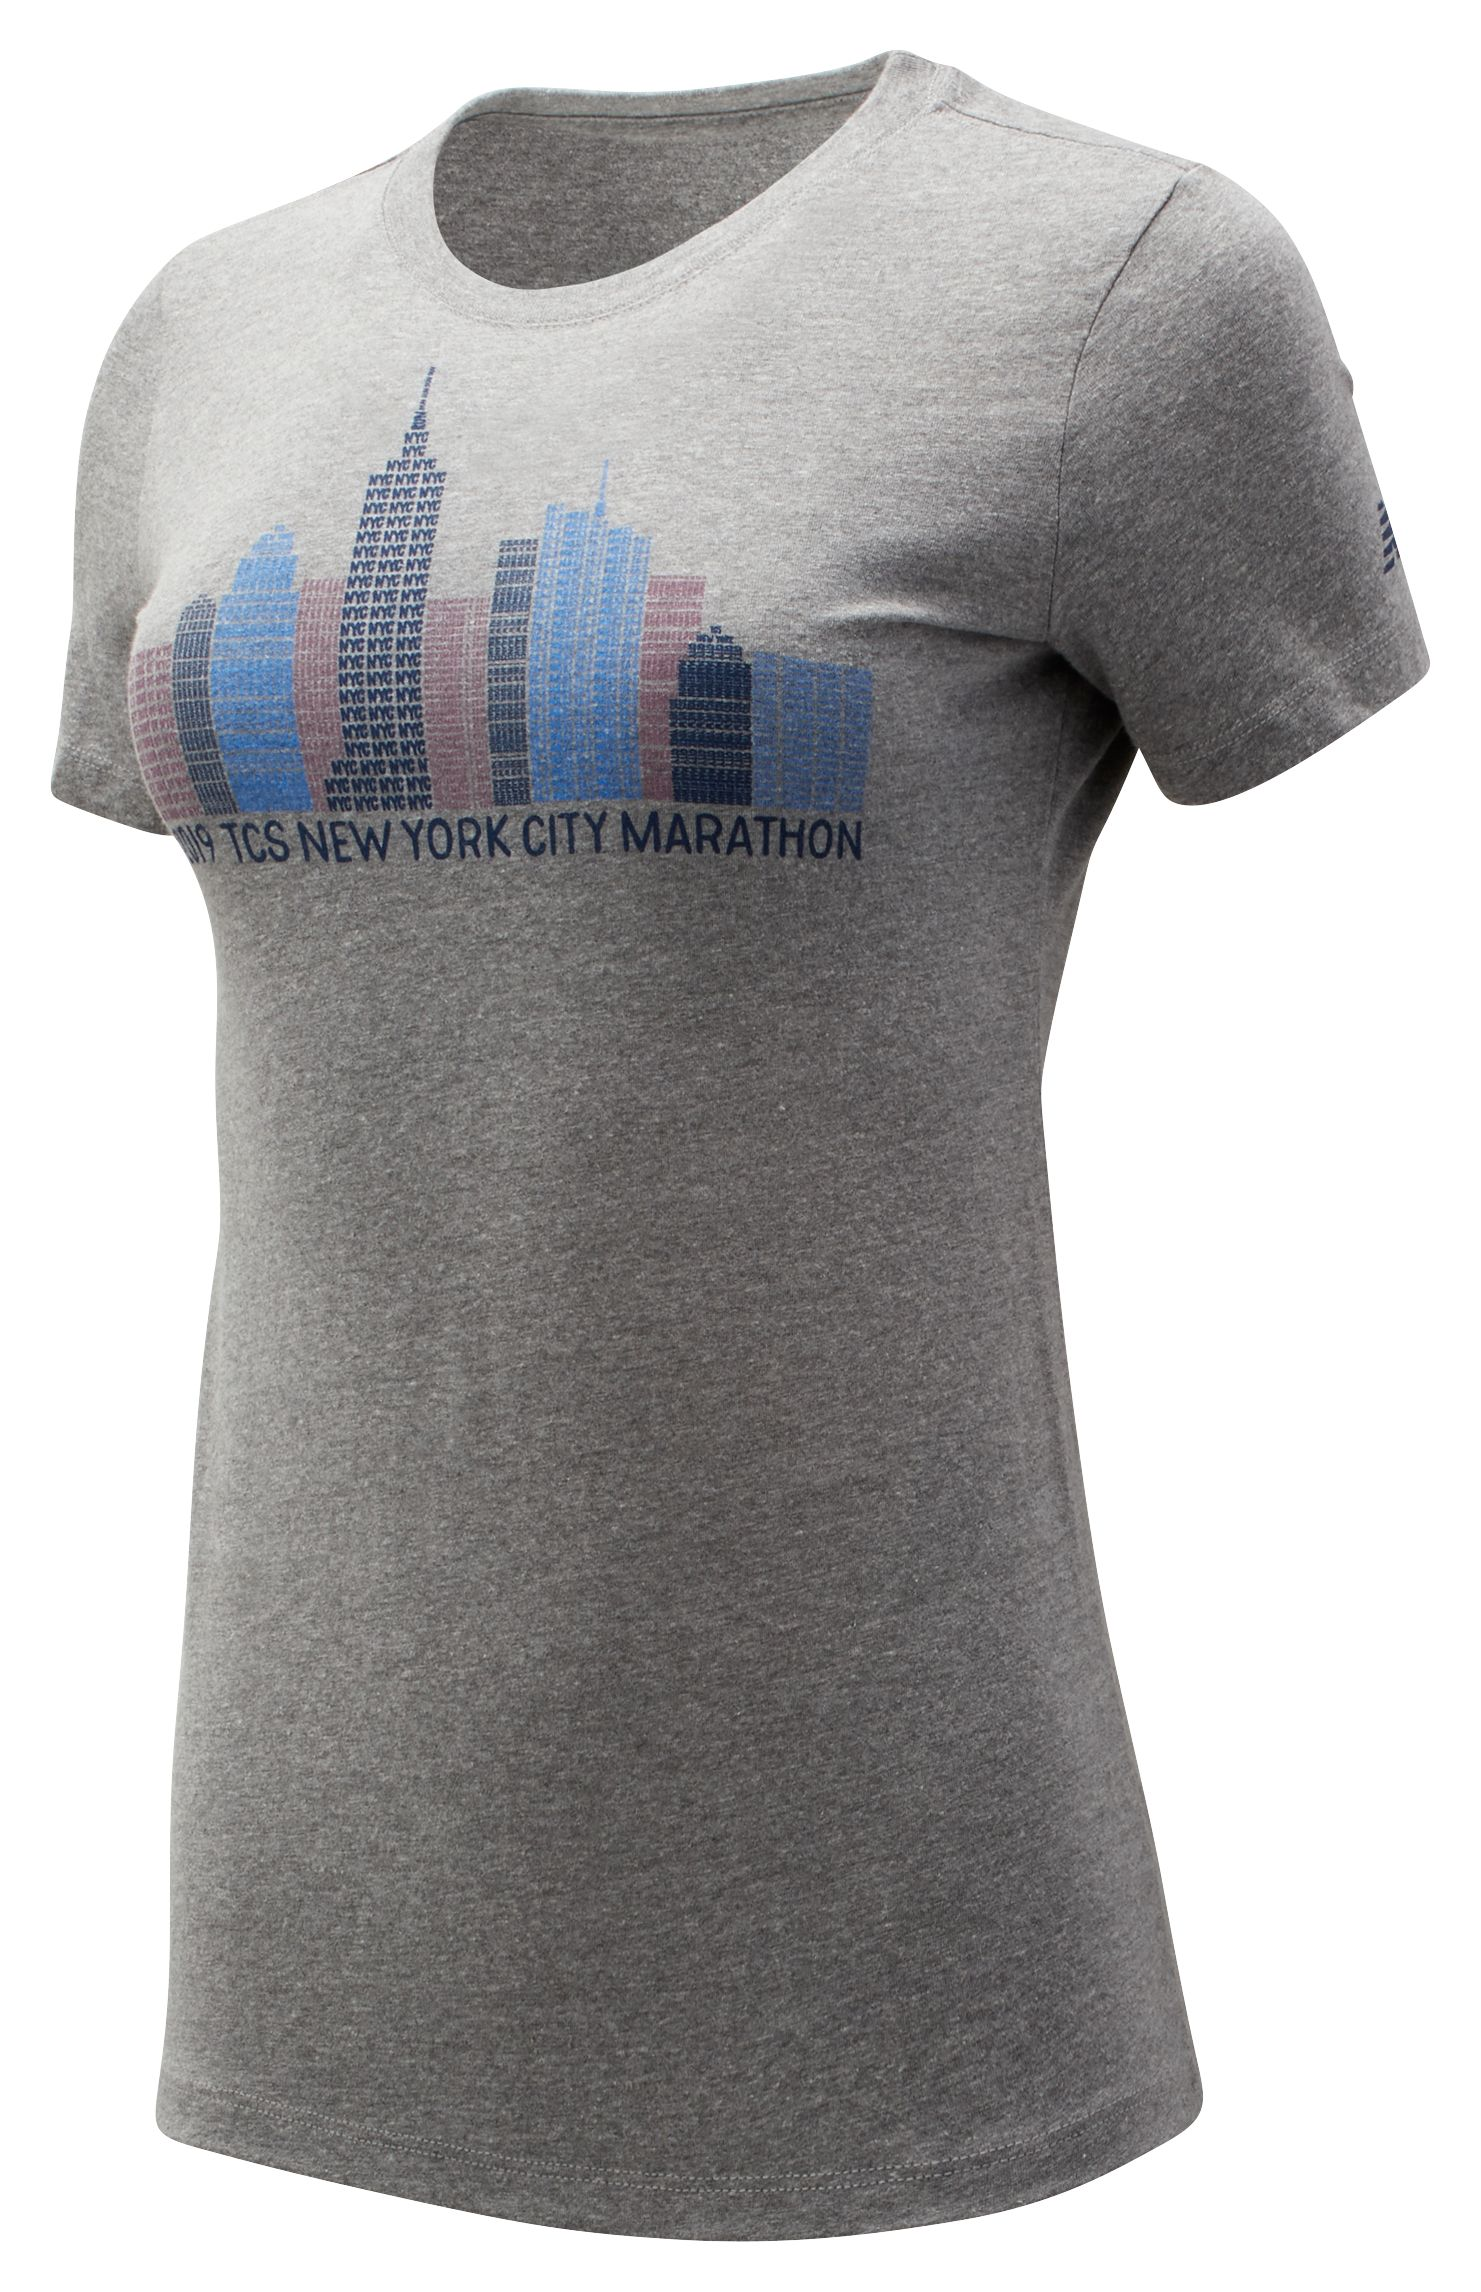 Women's 2019 NYC Marathon Skyline Tee